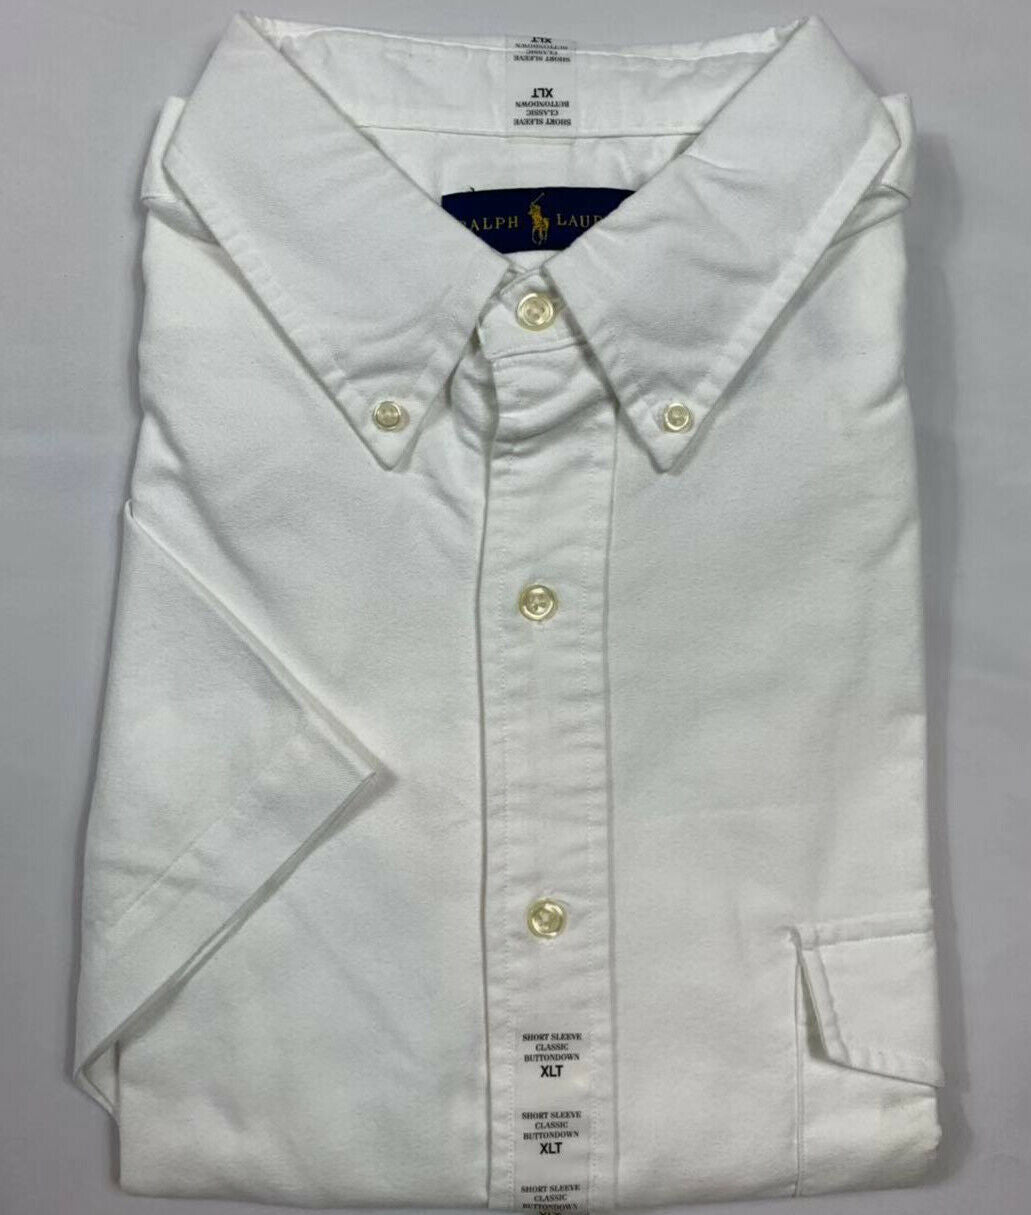 NWT-Polo-Ralph-Lauren-Men-039-s-Oxford-Button-Down-Short-Sleeve-Shirt-Big-amp-Tall miniature 4